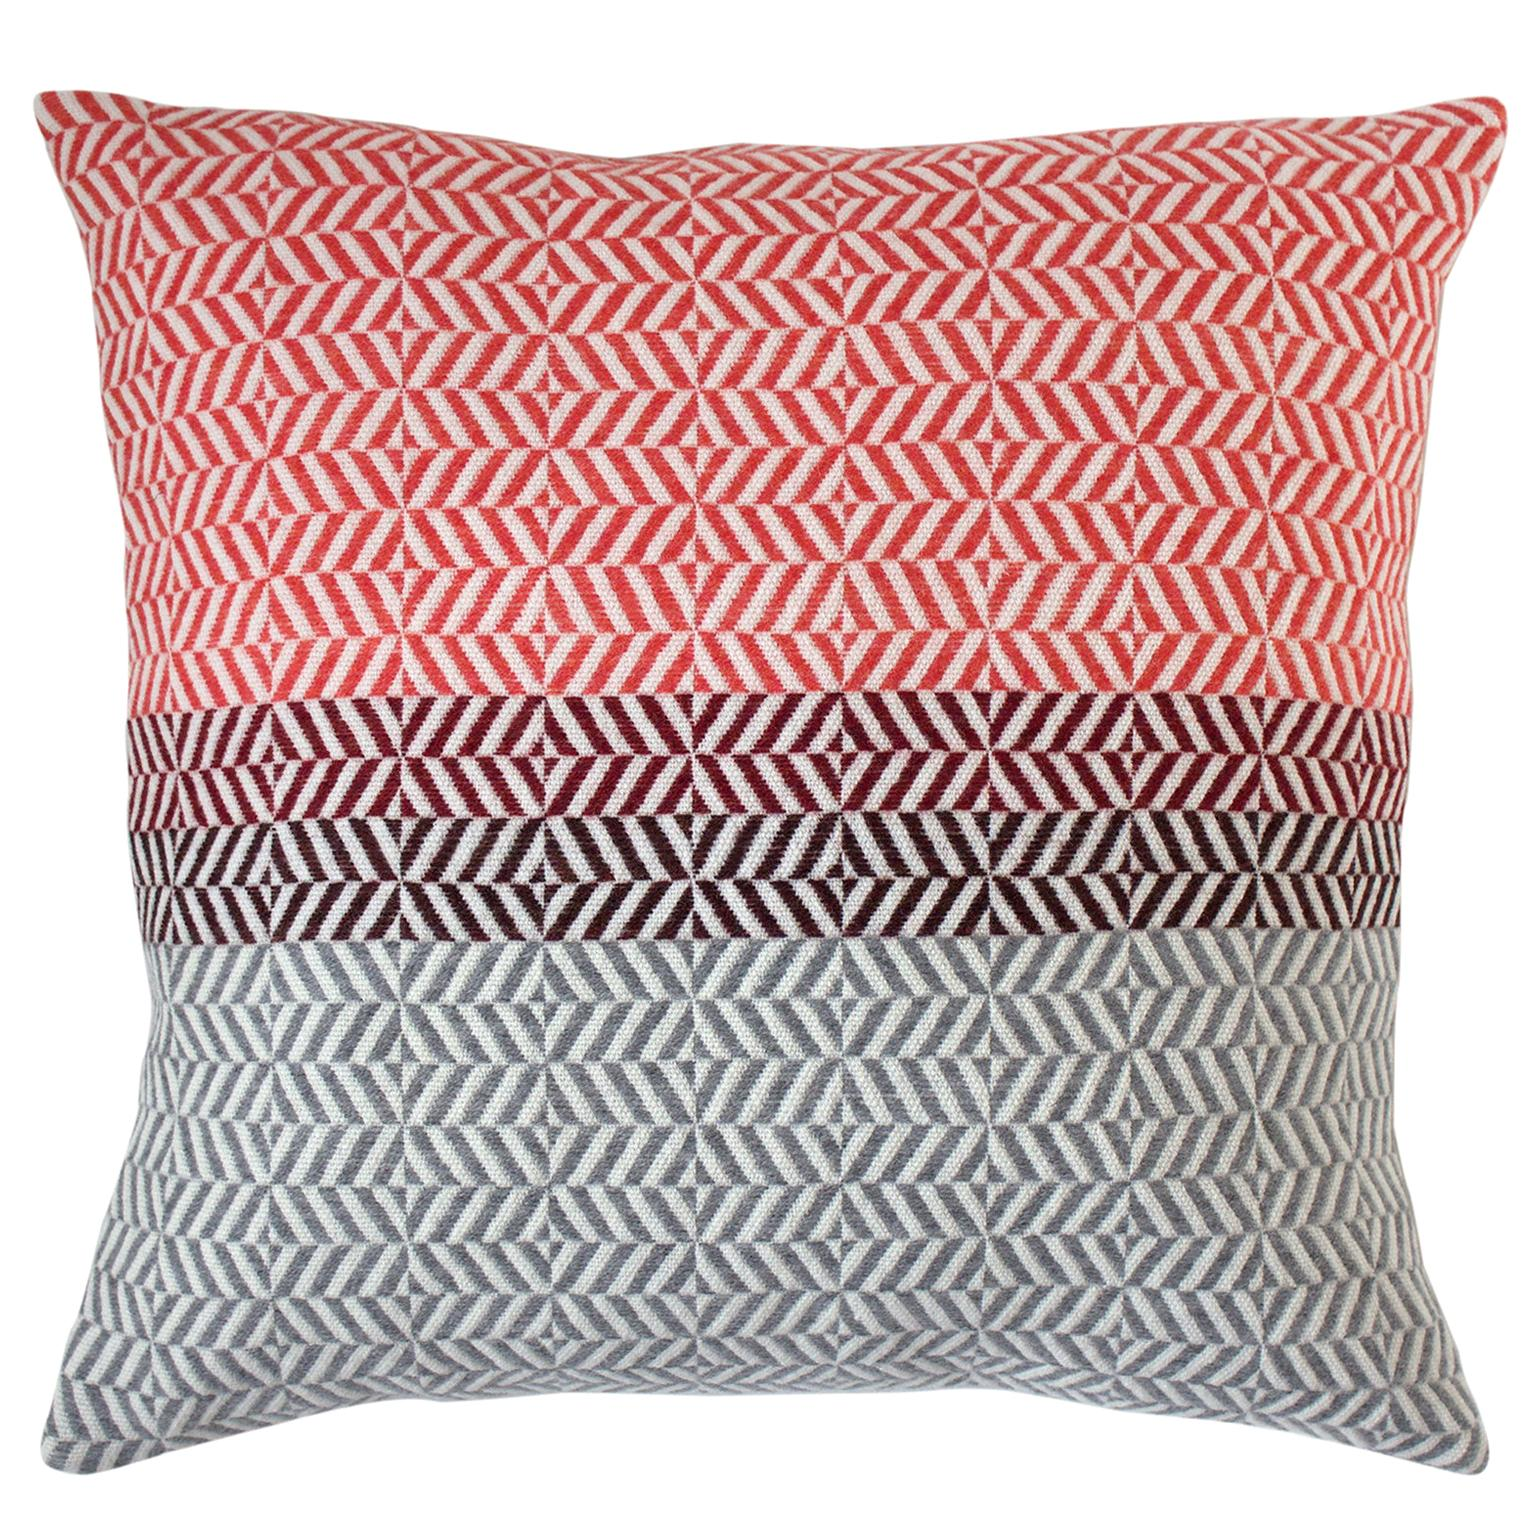 Handwoven 'Uccle' Block Geometric Merino Wool Cushion Pillow, Papaya/Red/Grey